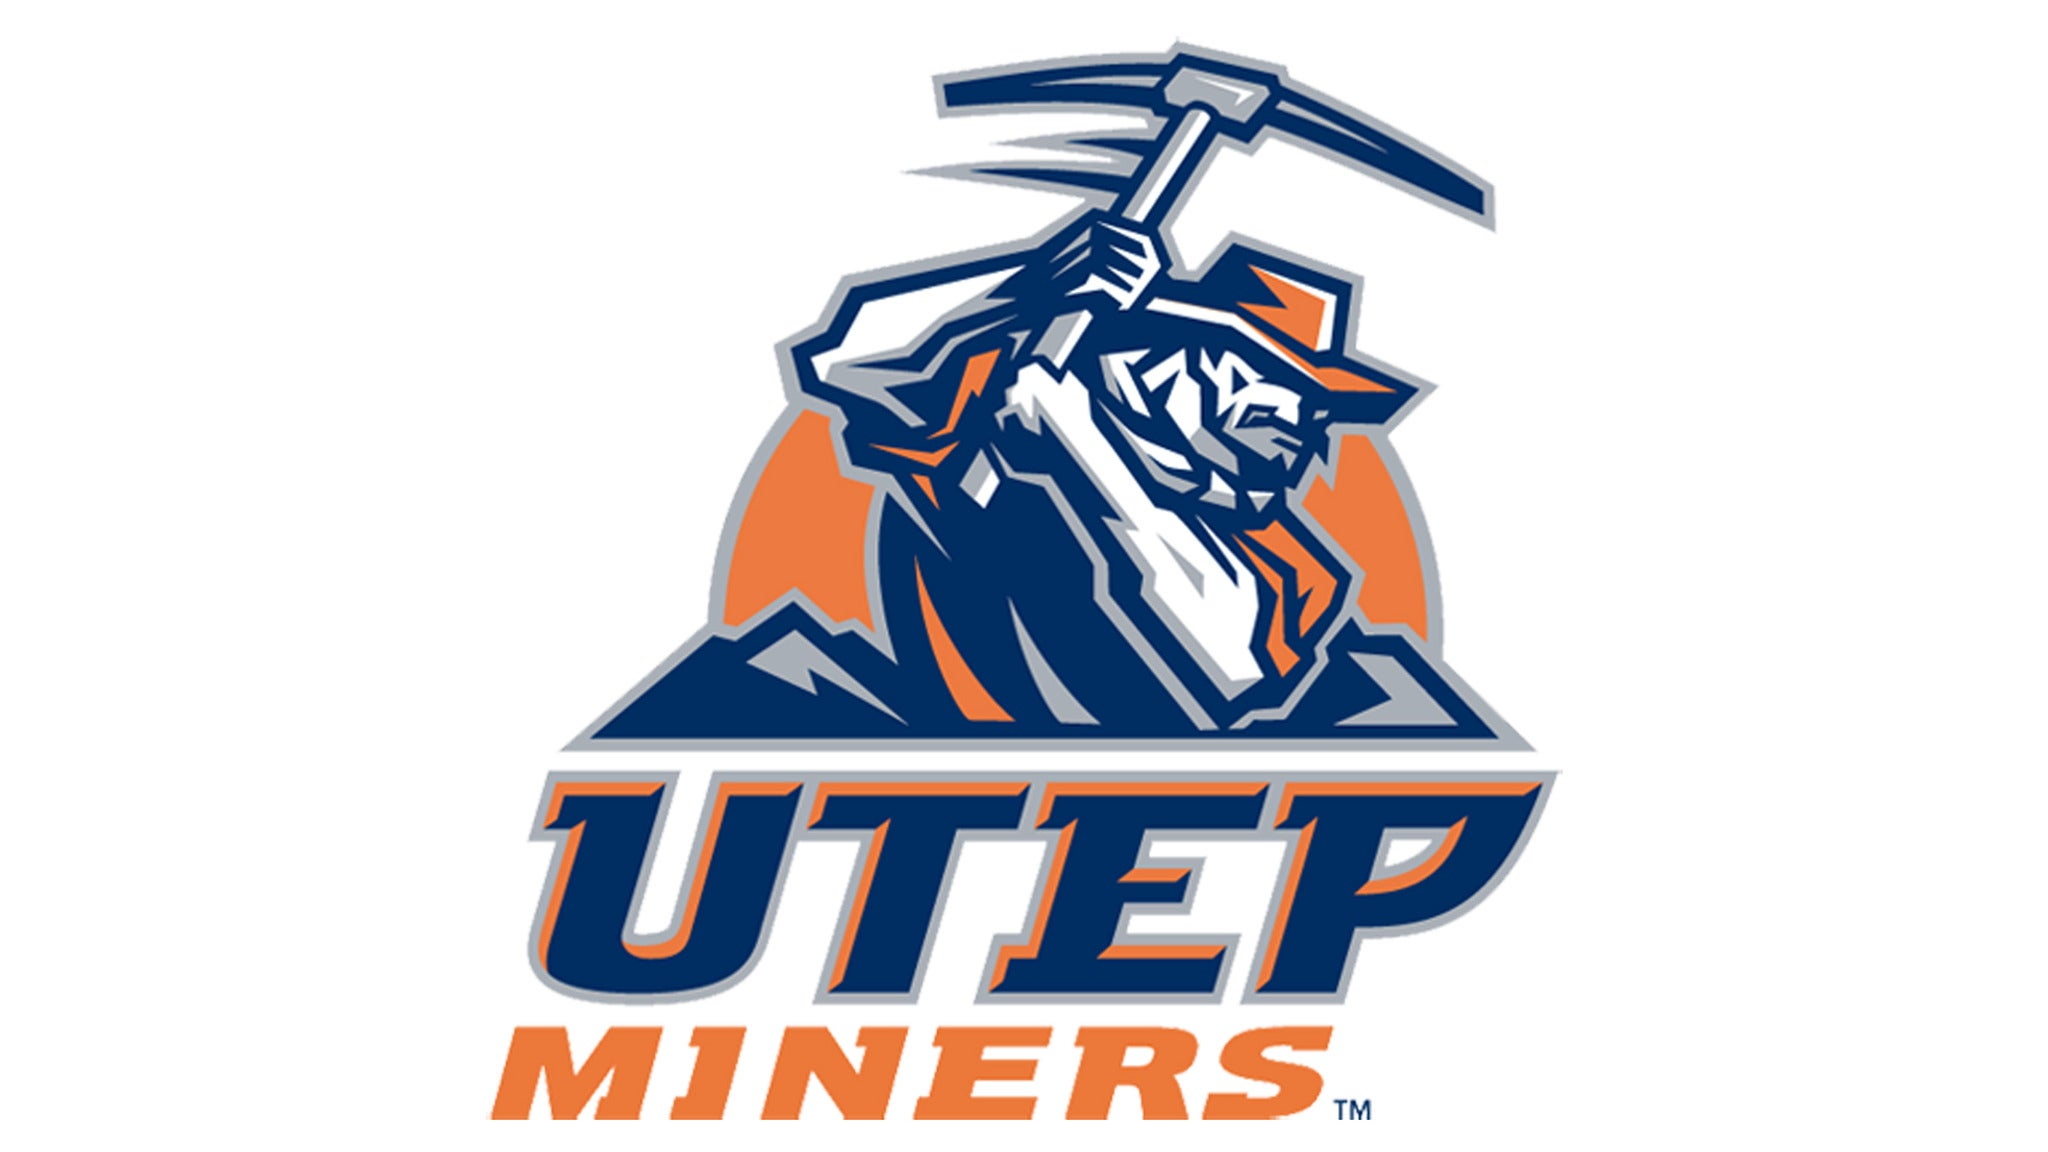 UTEP Football Mini Pack 2: Games 2-09/21, 3-10/05, 5-11/09